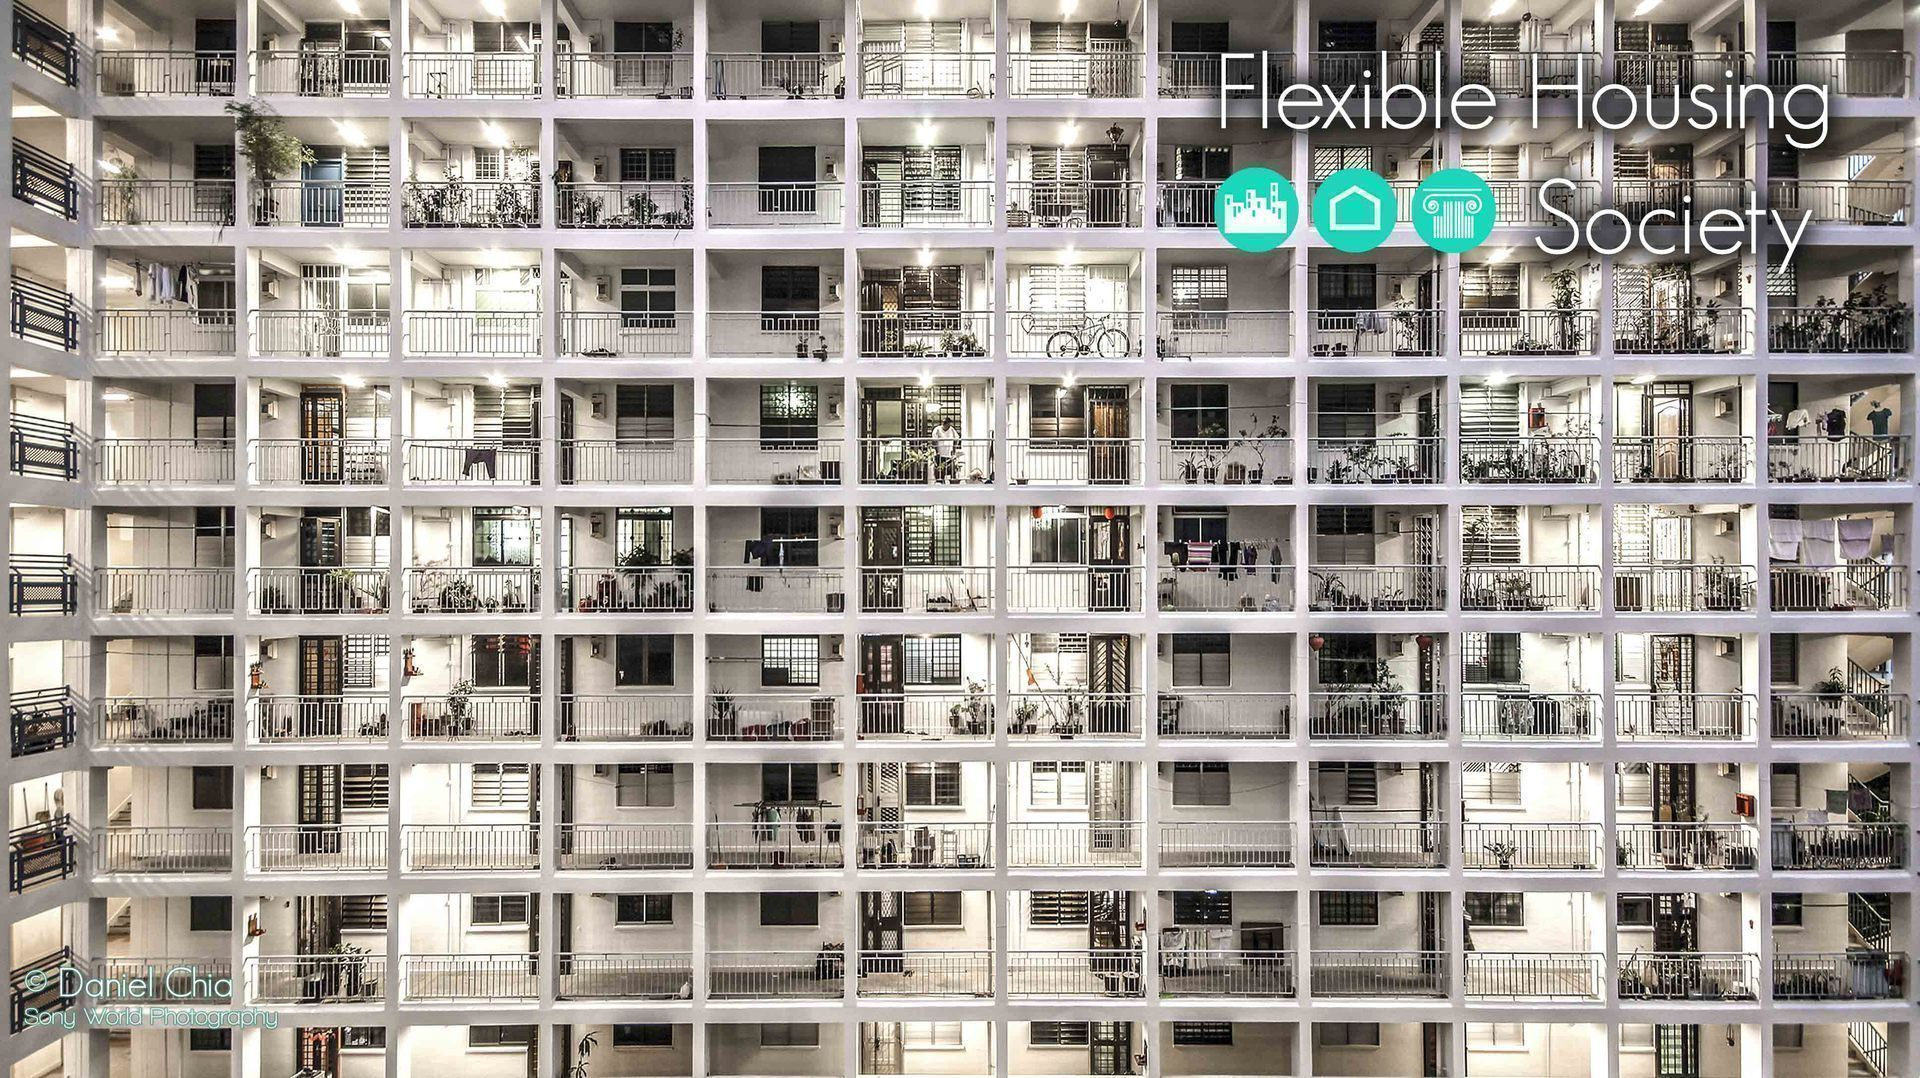 Concurso reTHINKING: Flexible housing [society]